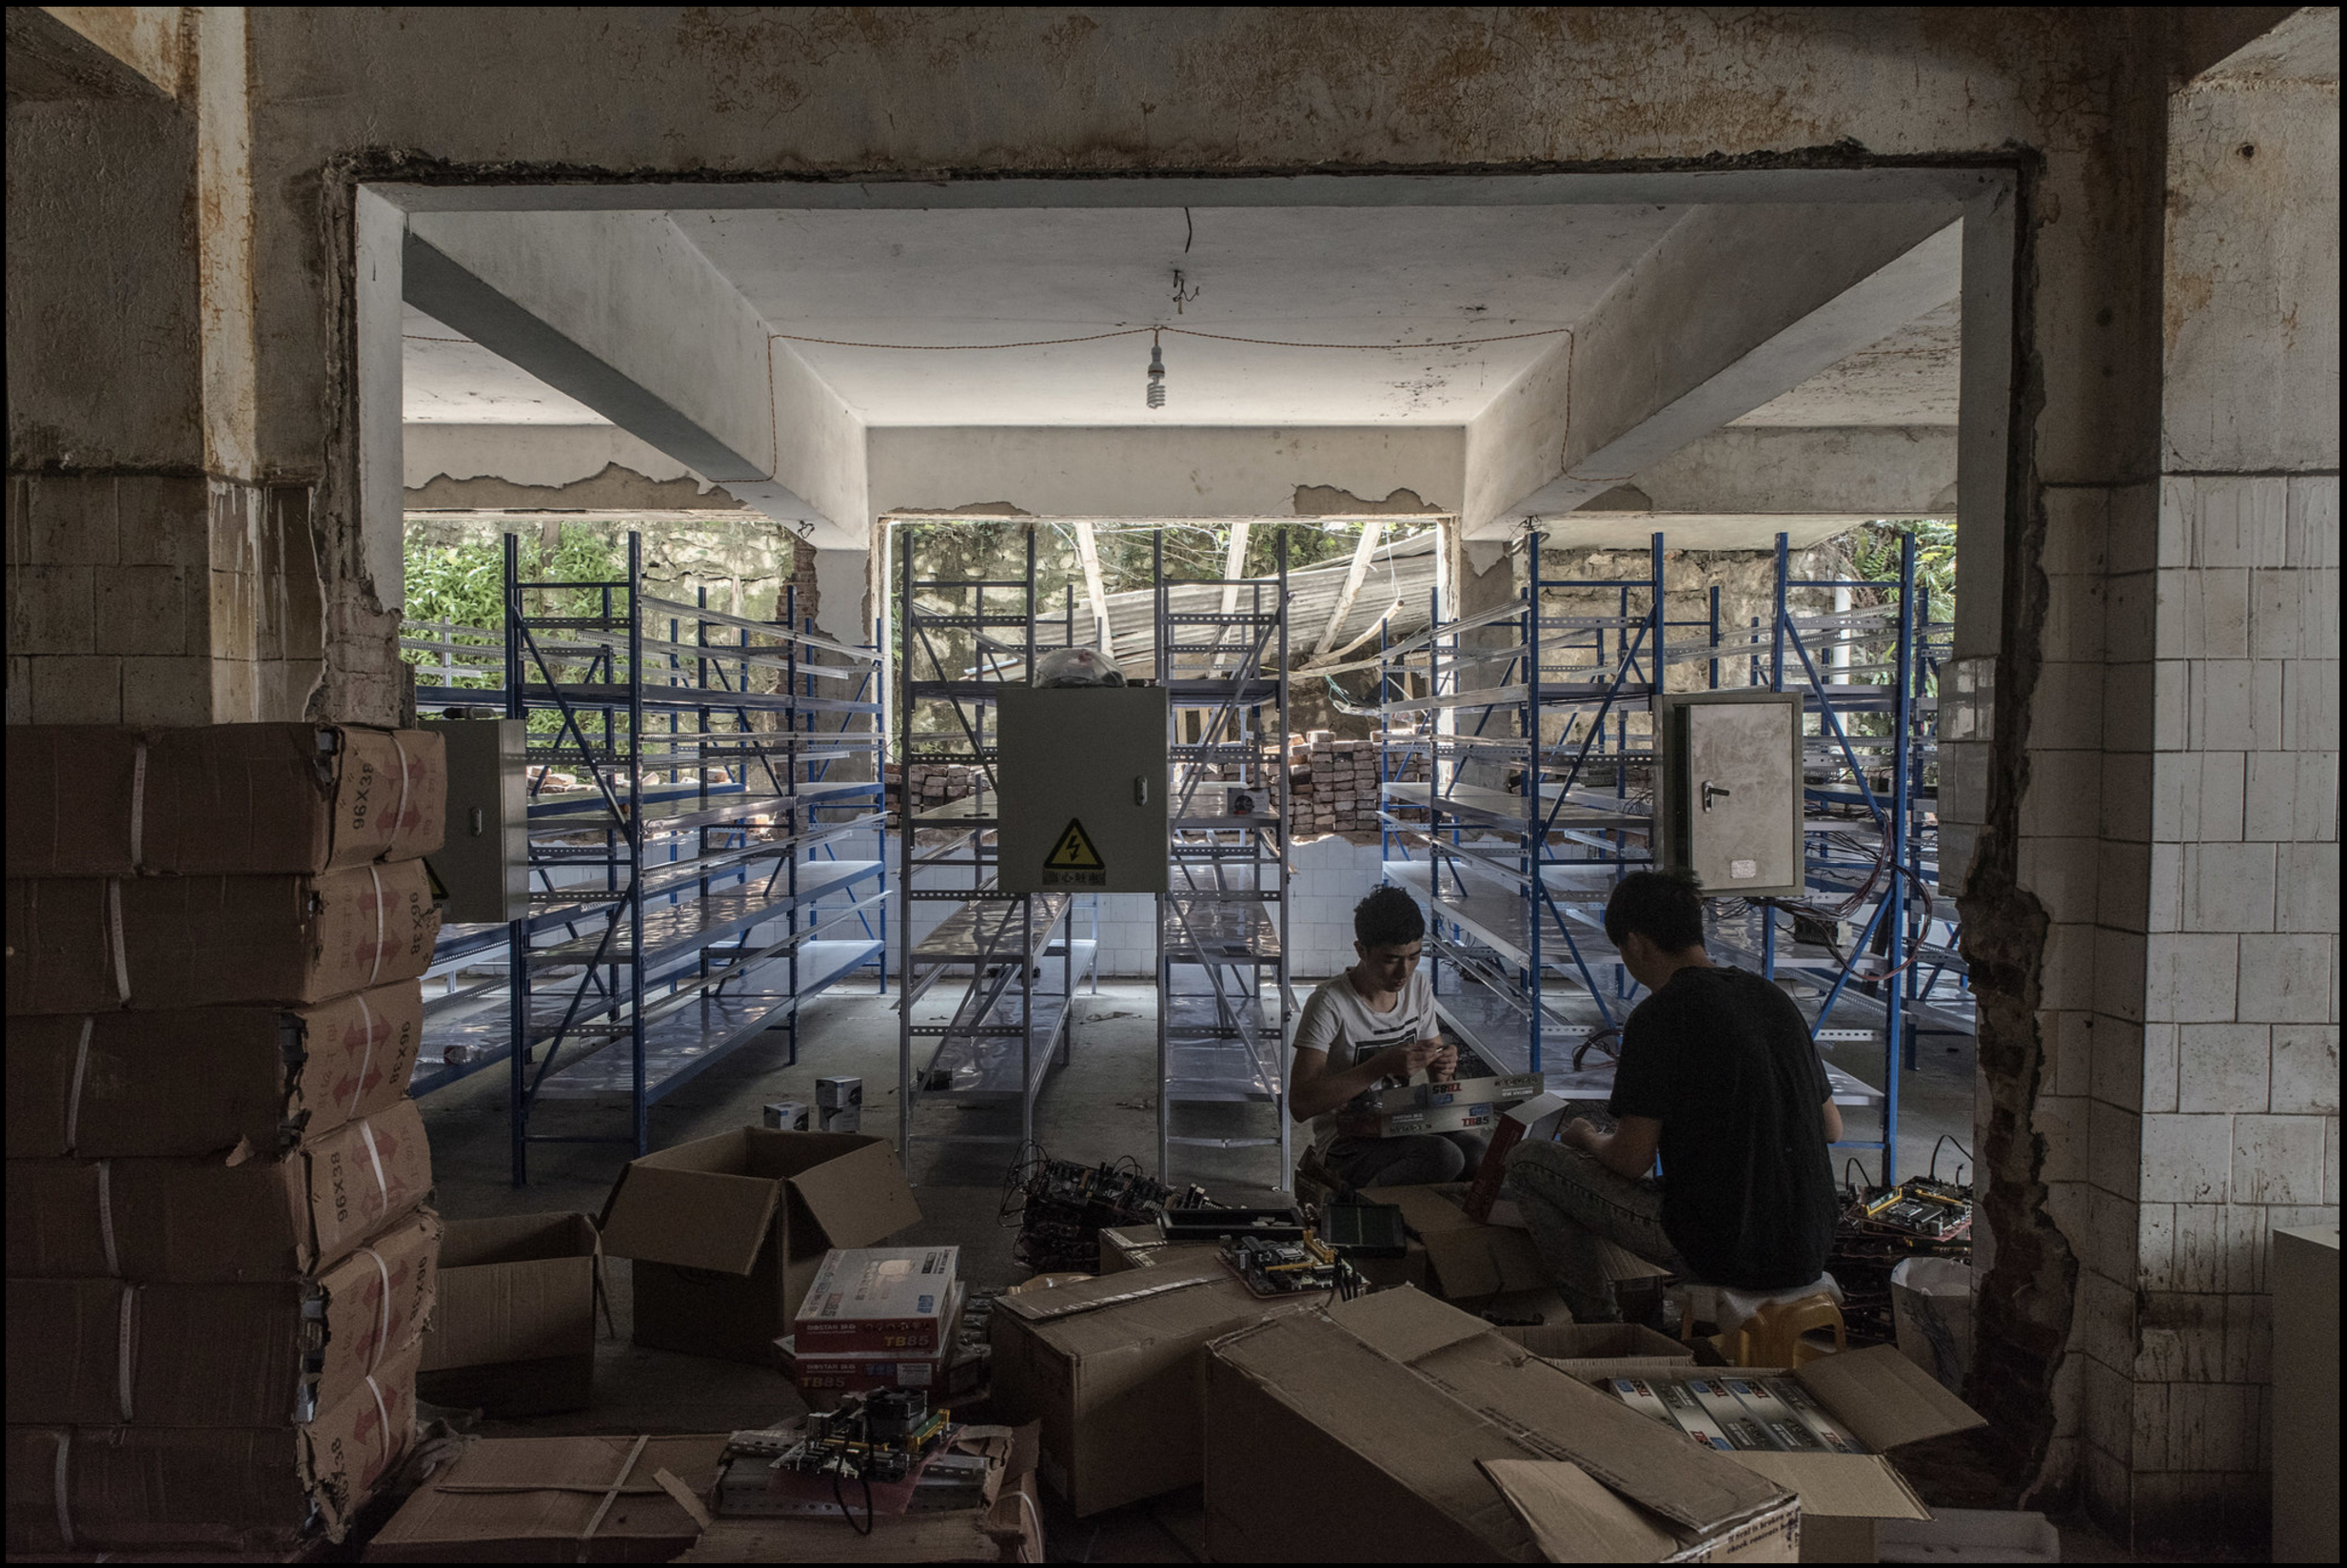 FireShot Capture 7 - Mining for Bitcoin in China - The gate_ - http___www.nytimes.com_slideshow_20